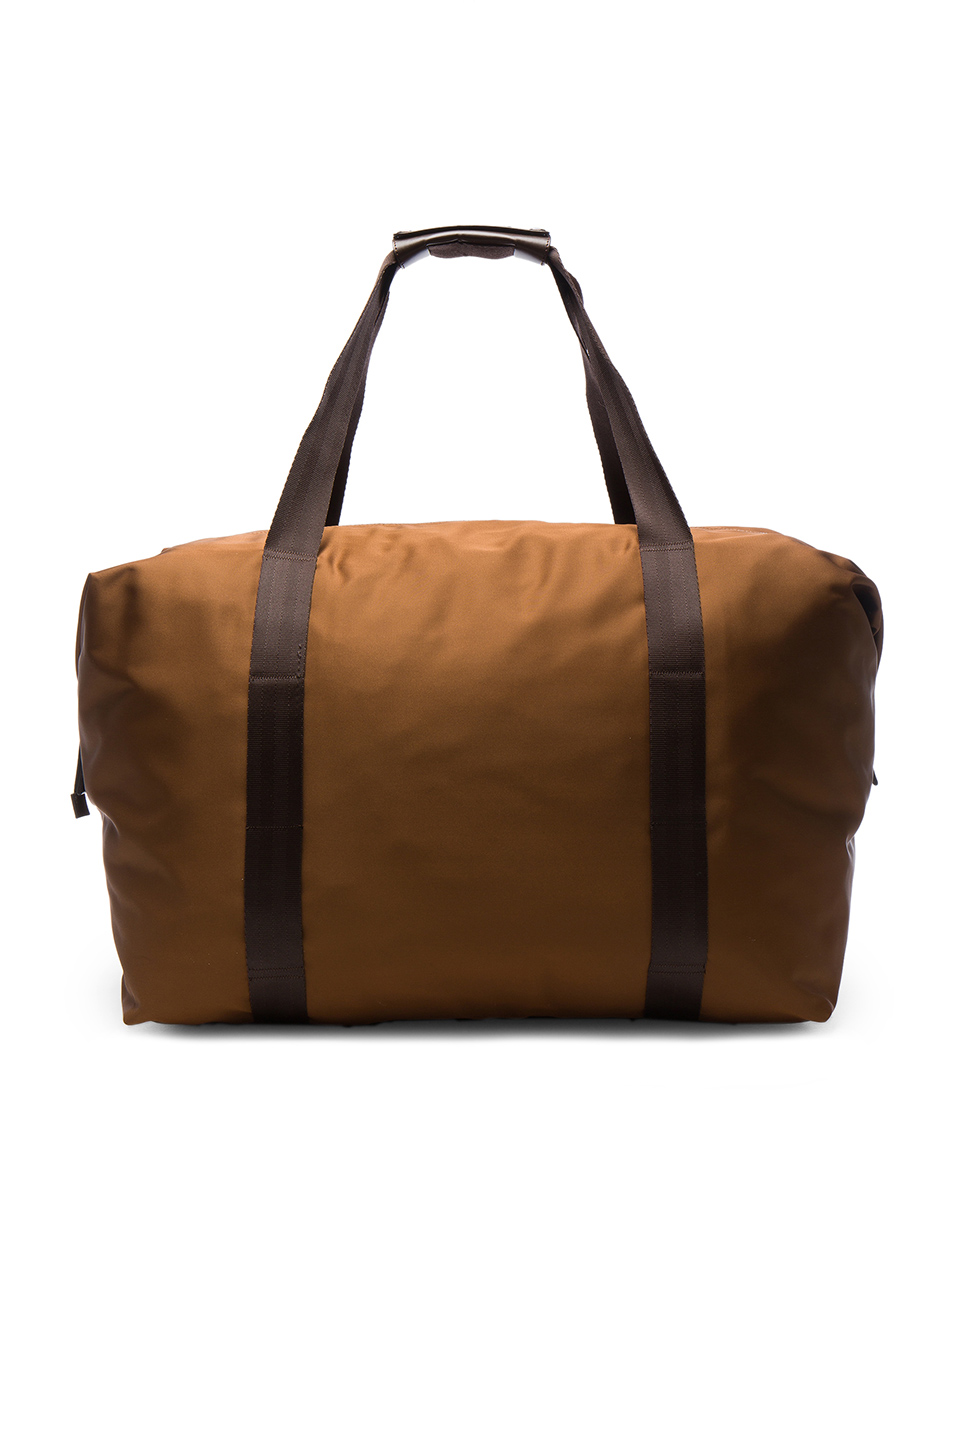 Stella McCartneyWeekend Bag in Brown